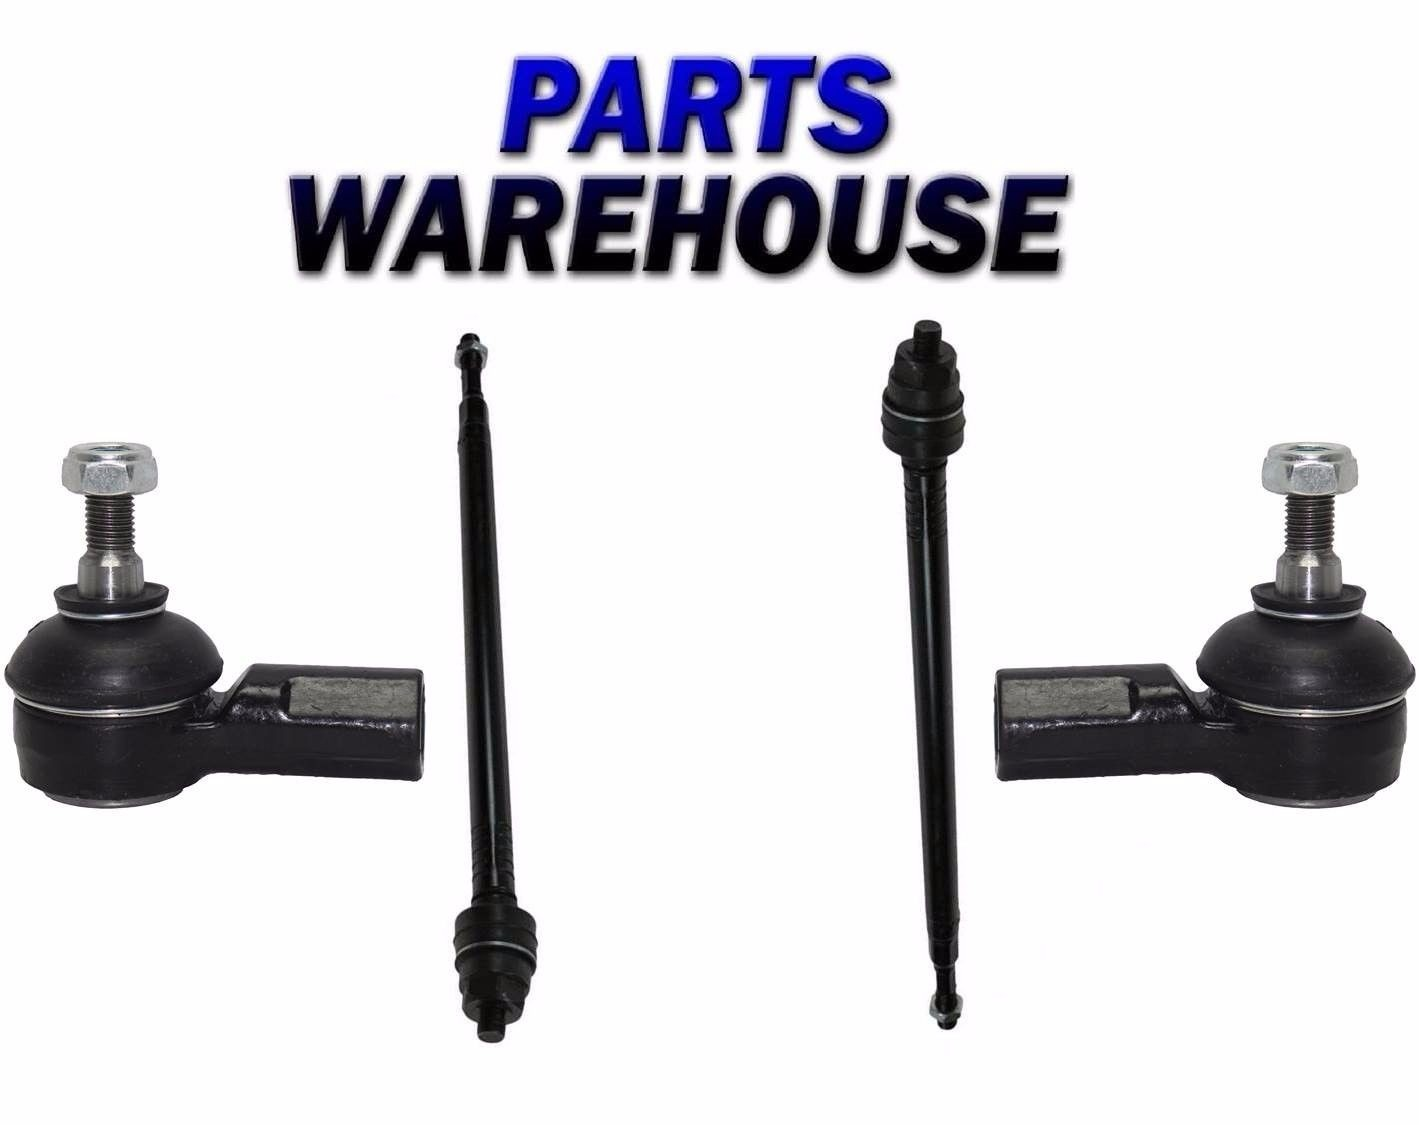 4 Pcs Kit Front Inner Outer Tie Rod Ends Fits Acura El Honda Civic 2005 2001 All Products